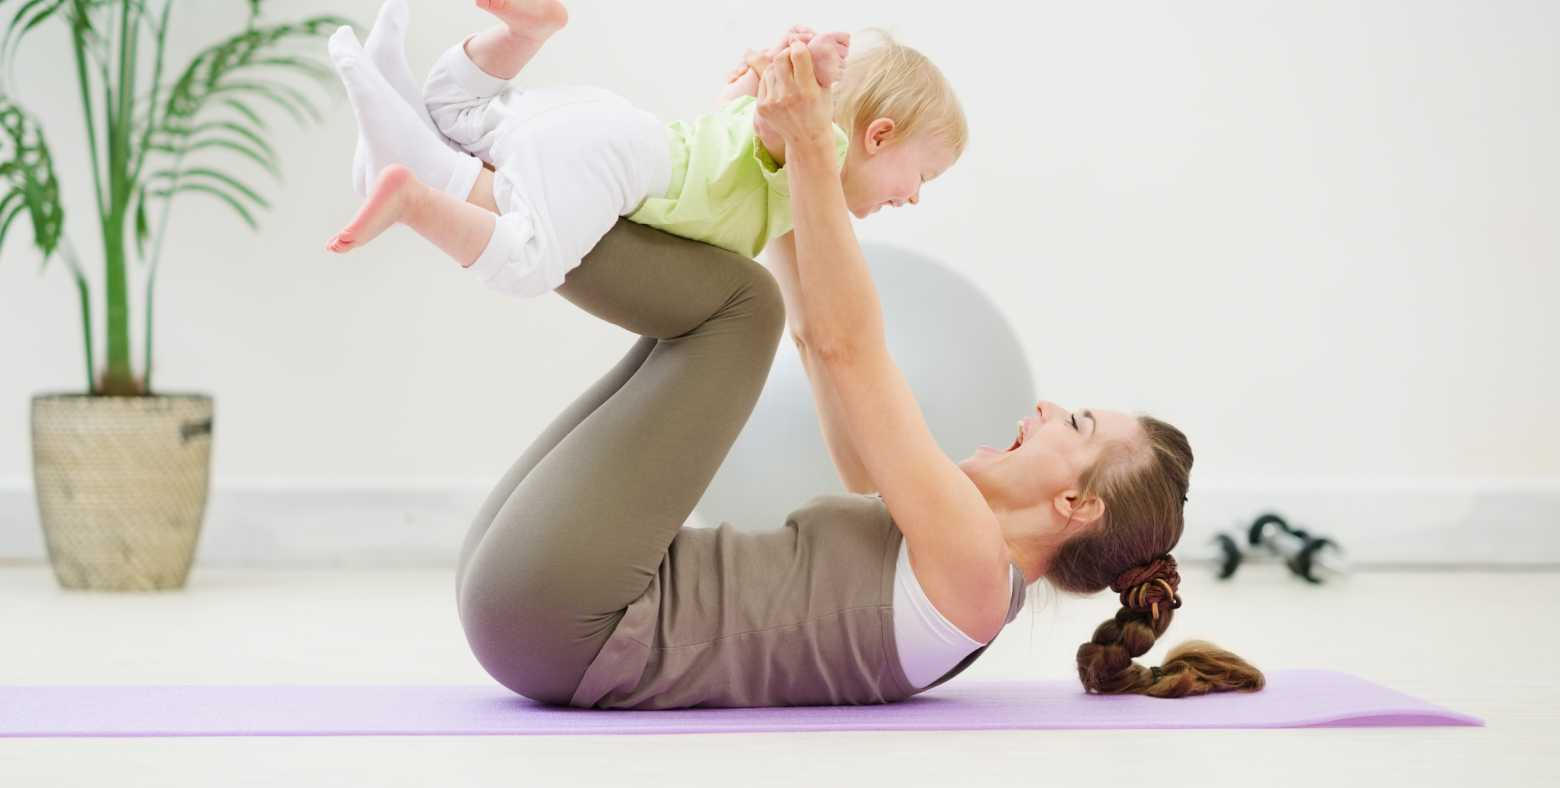 mom and baby on exercise mat